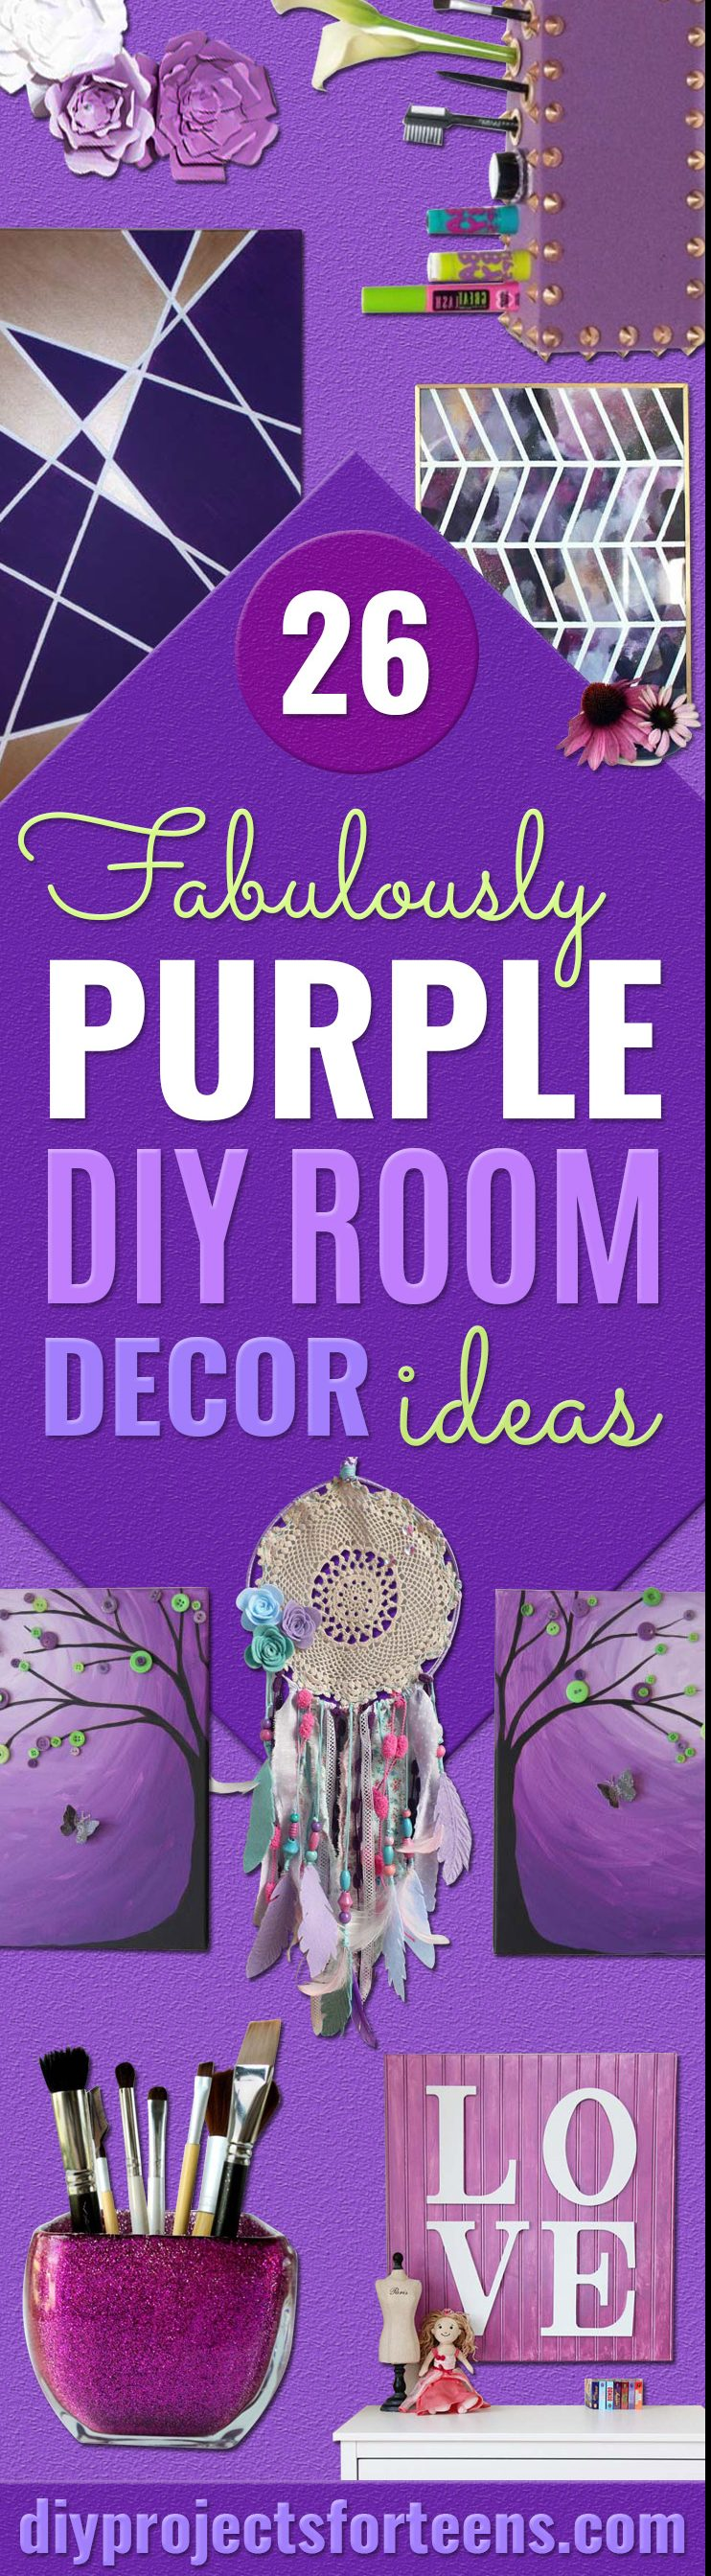 DIY Purple Room Decor - Best Bedroom Ideas and Projects in Purple - Cool Accessories, Crafts, Wall Art, Lamps, Rugs, Pillows for Adults, Teen and Girls Room